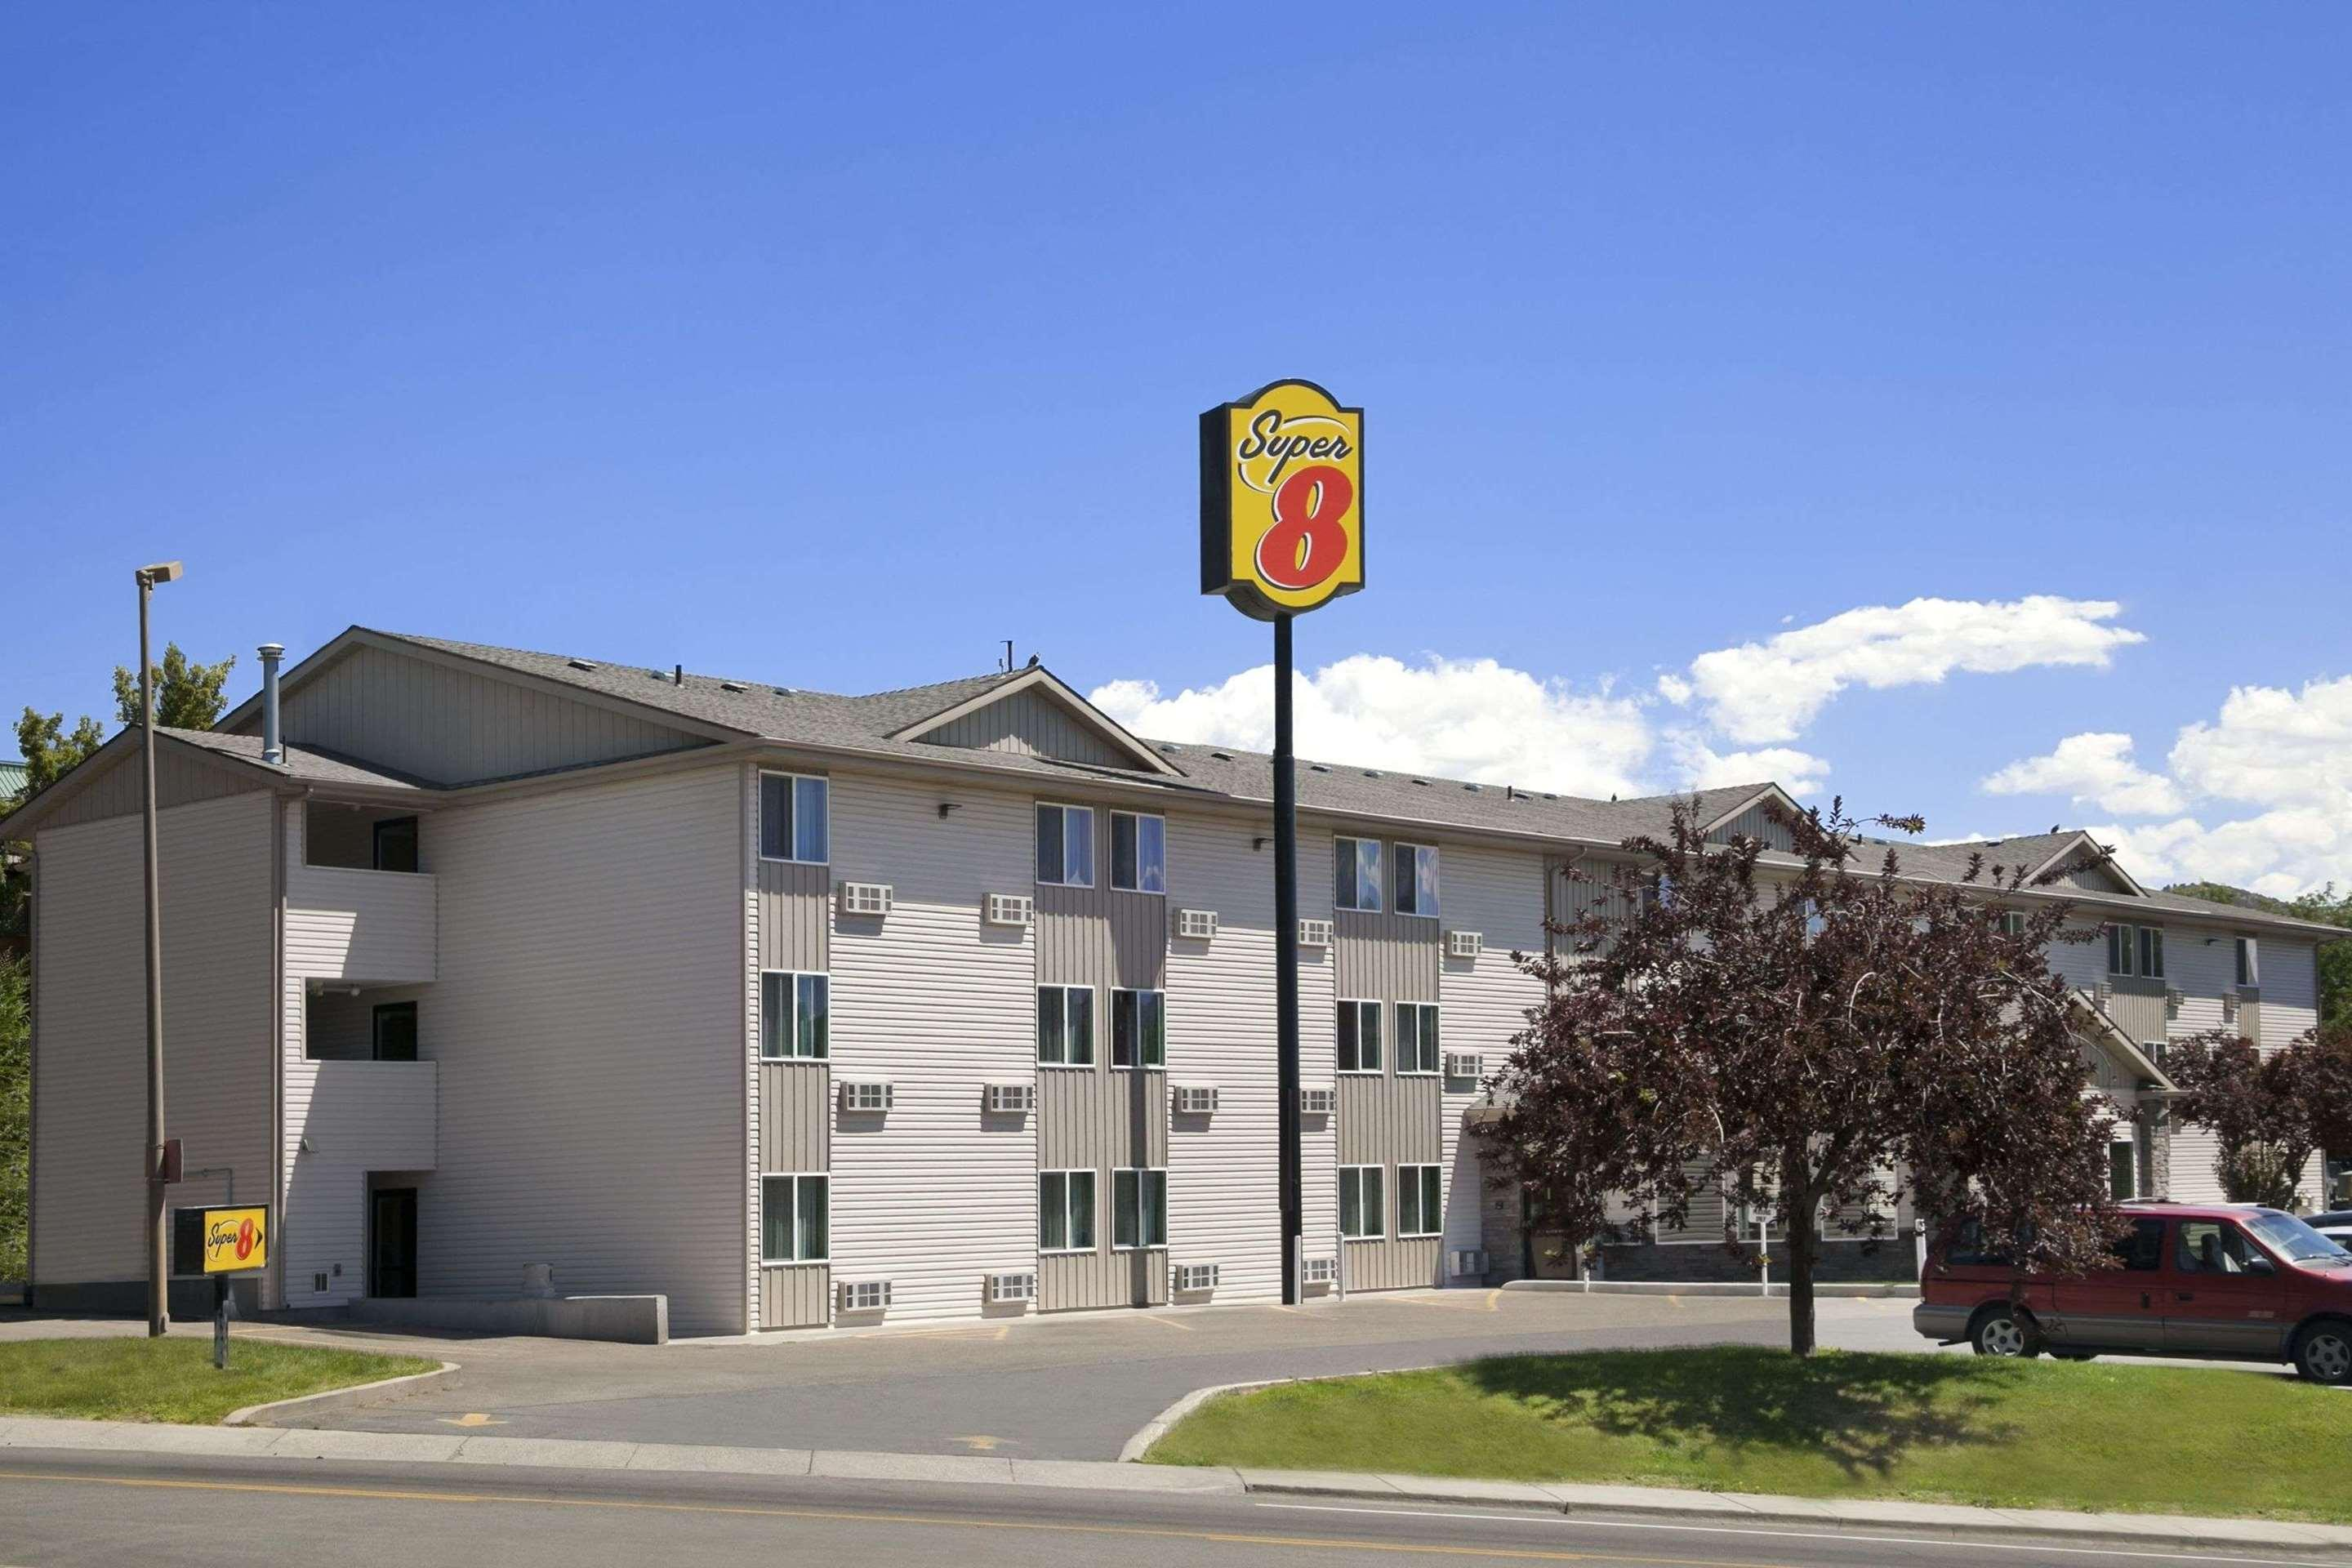 Super 8 by Wyndham Pocatello